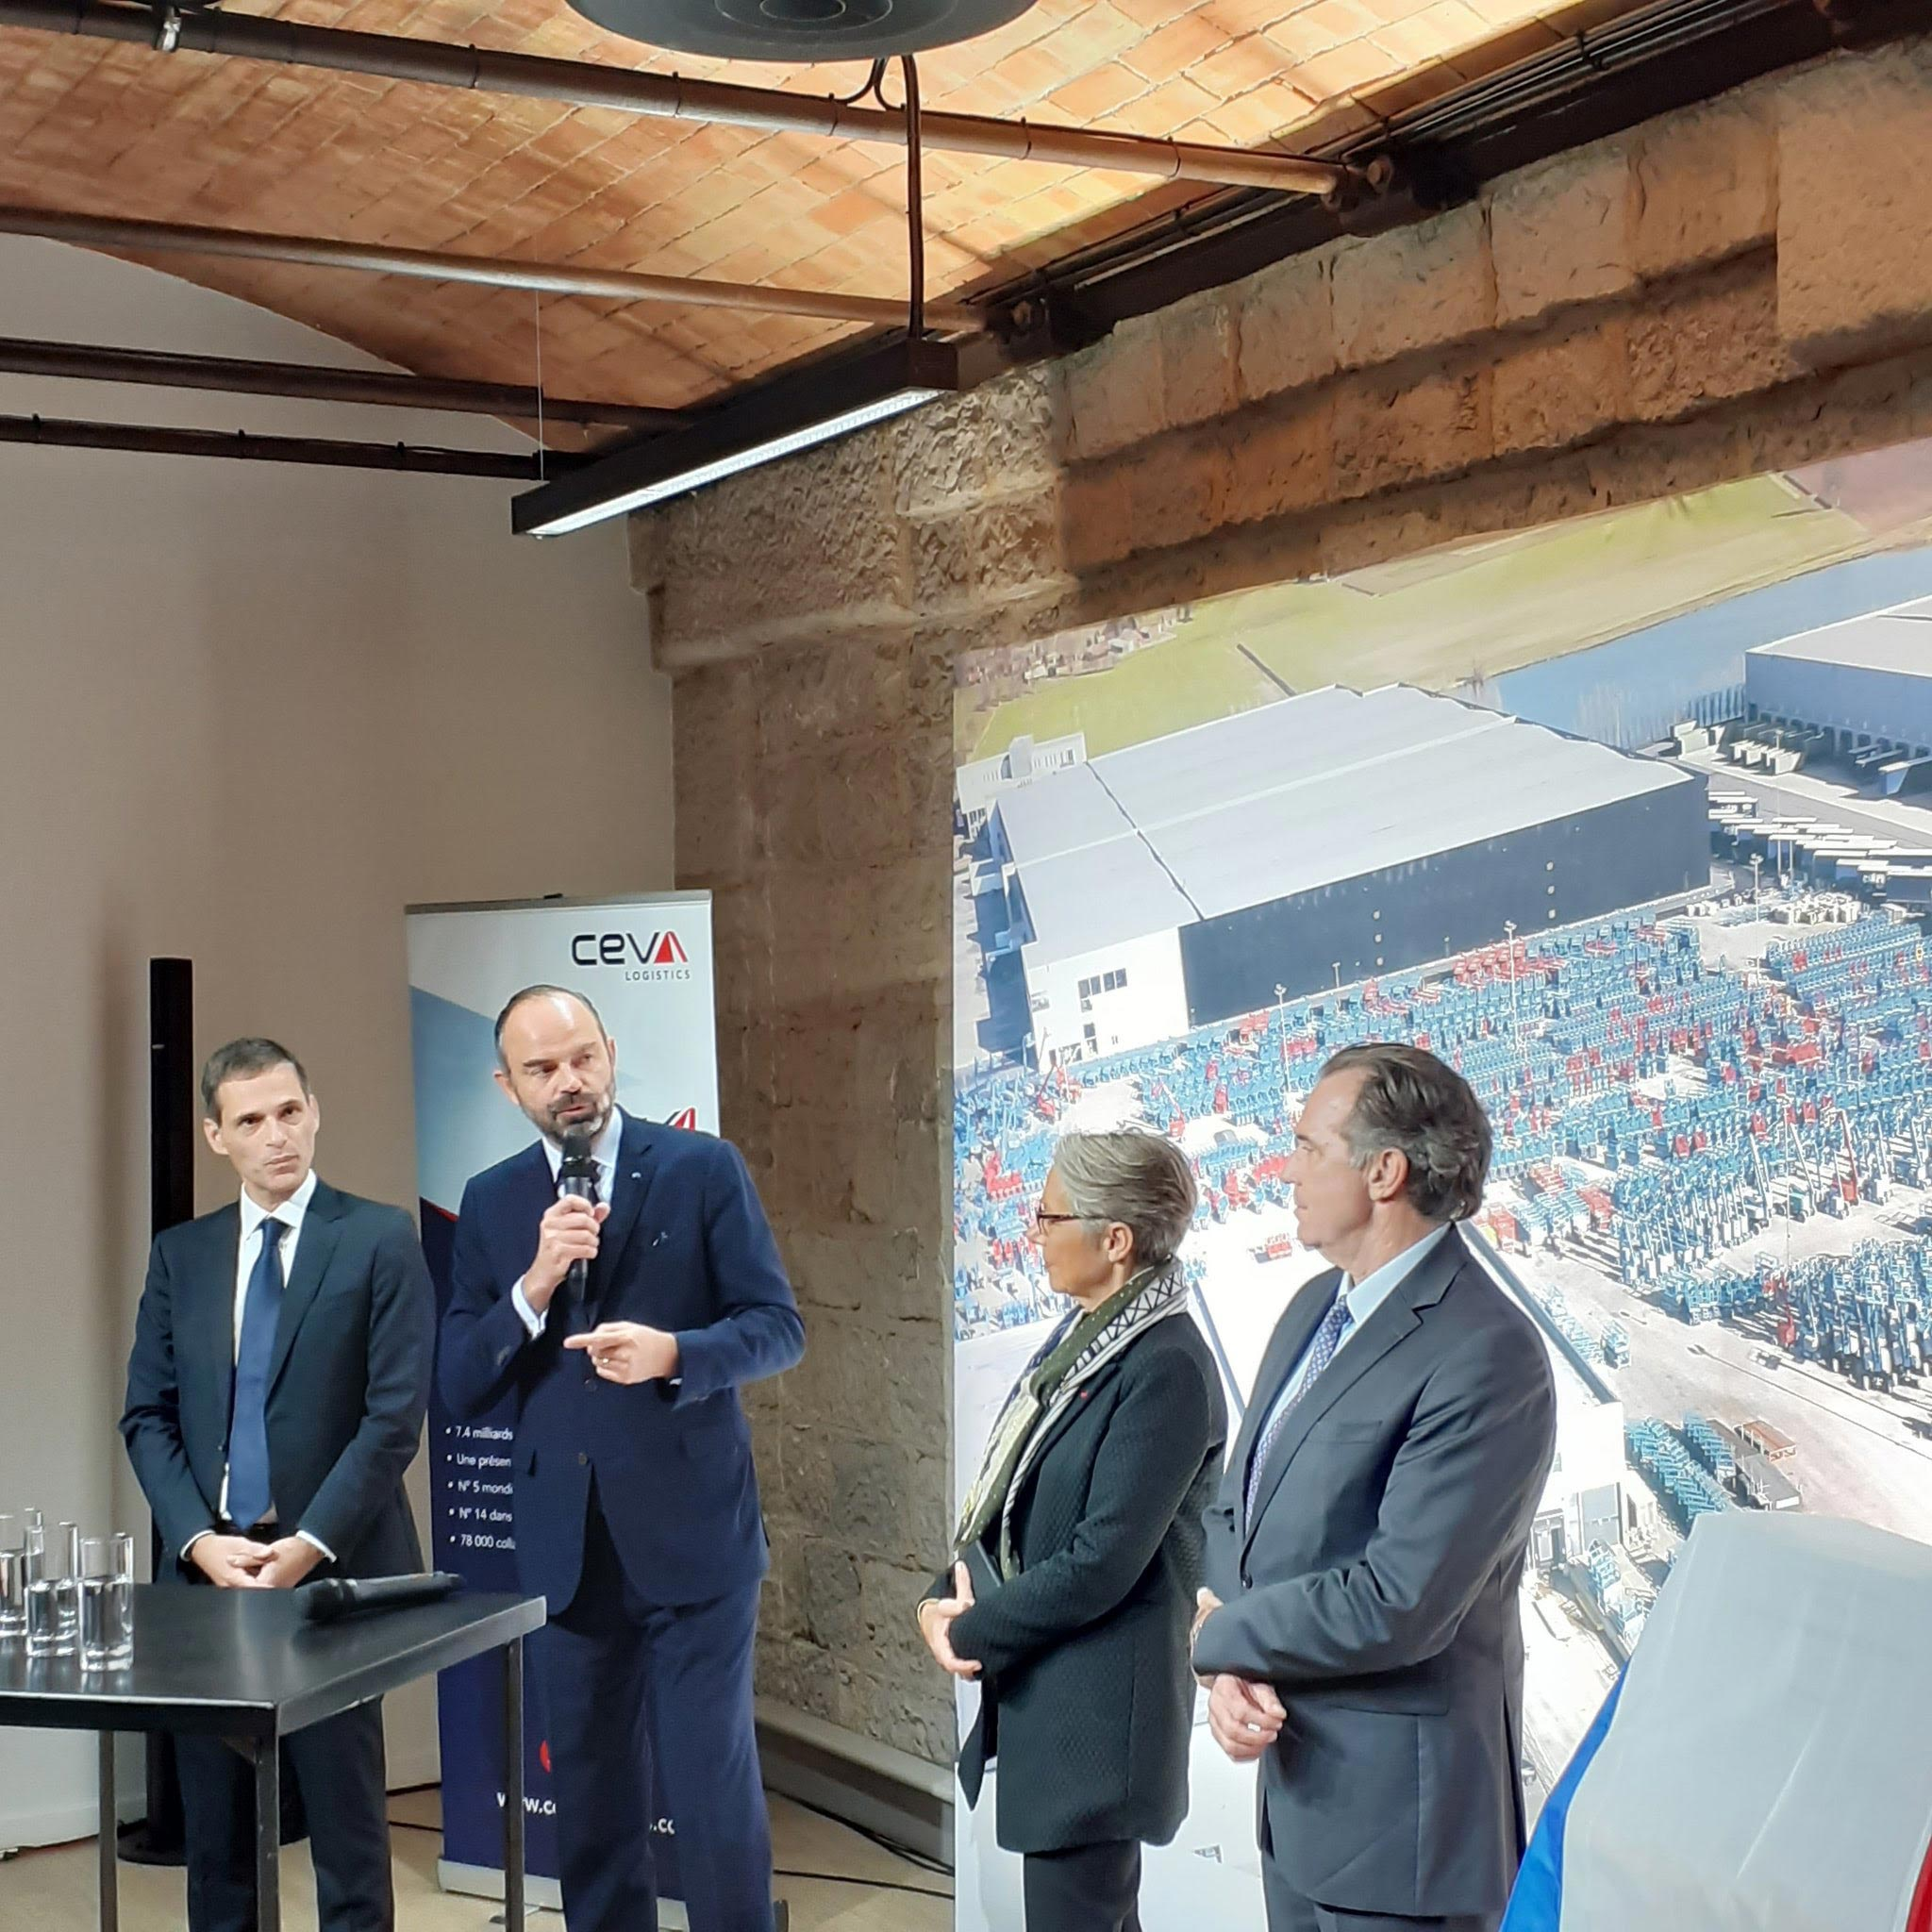 French Prime Minister Edouard Philippe inaugurated the new CEVA Logistics headquarter in November 2019